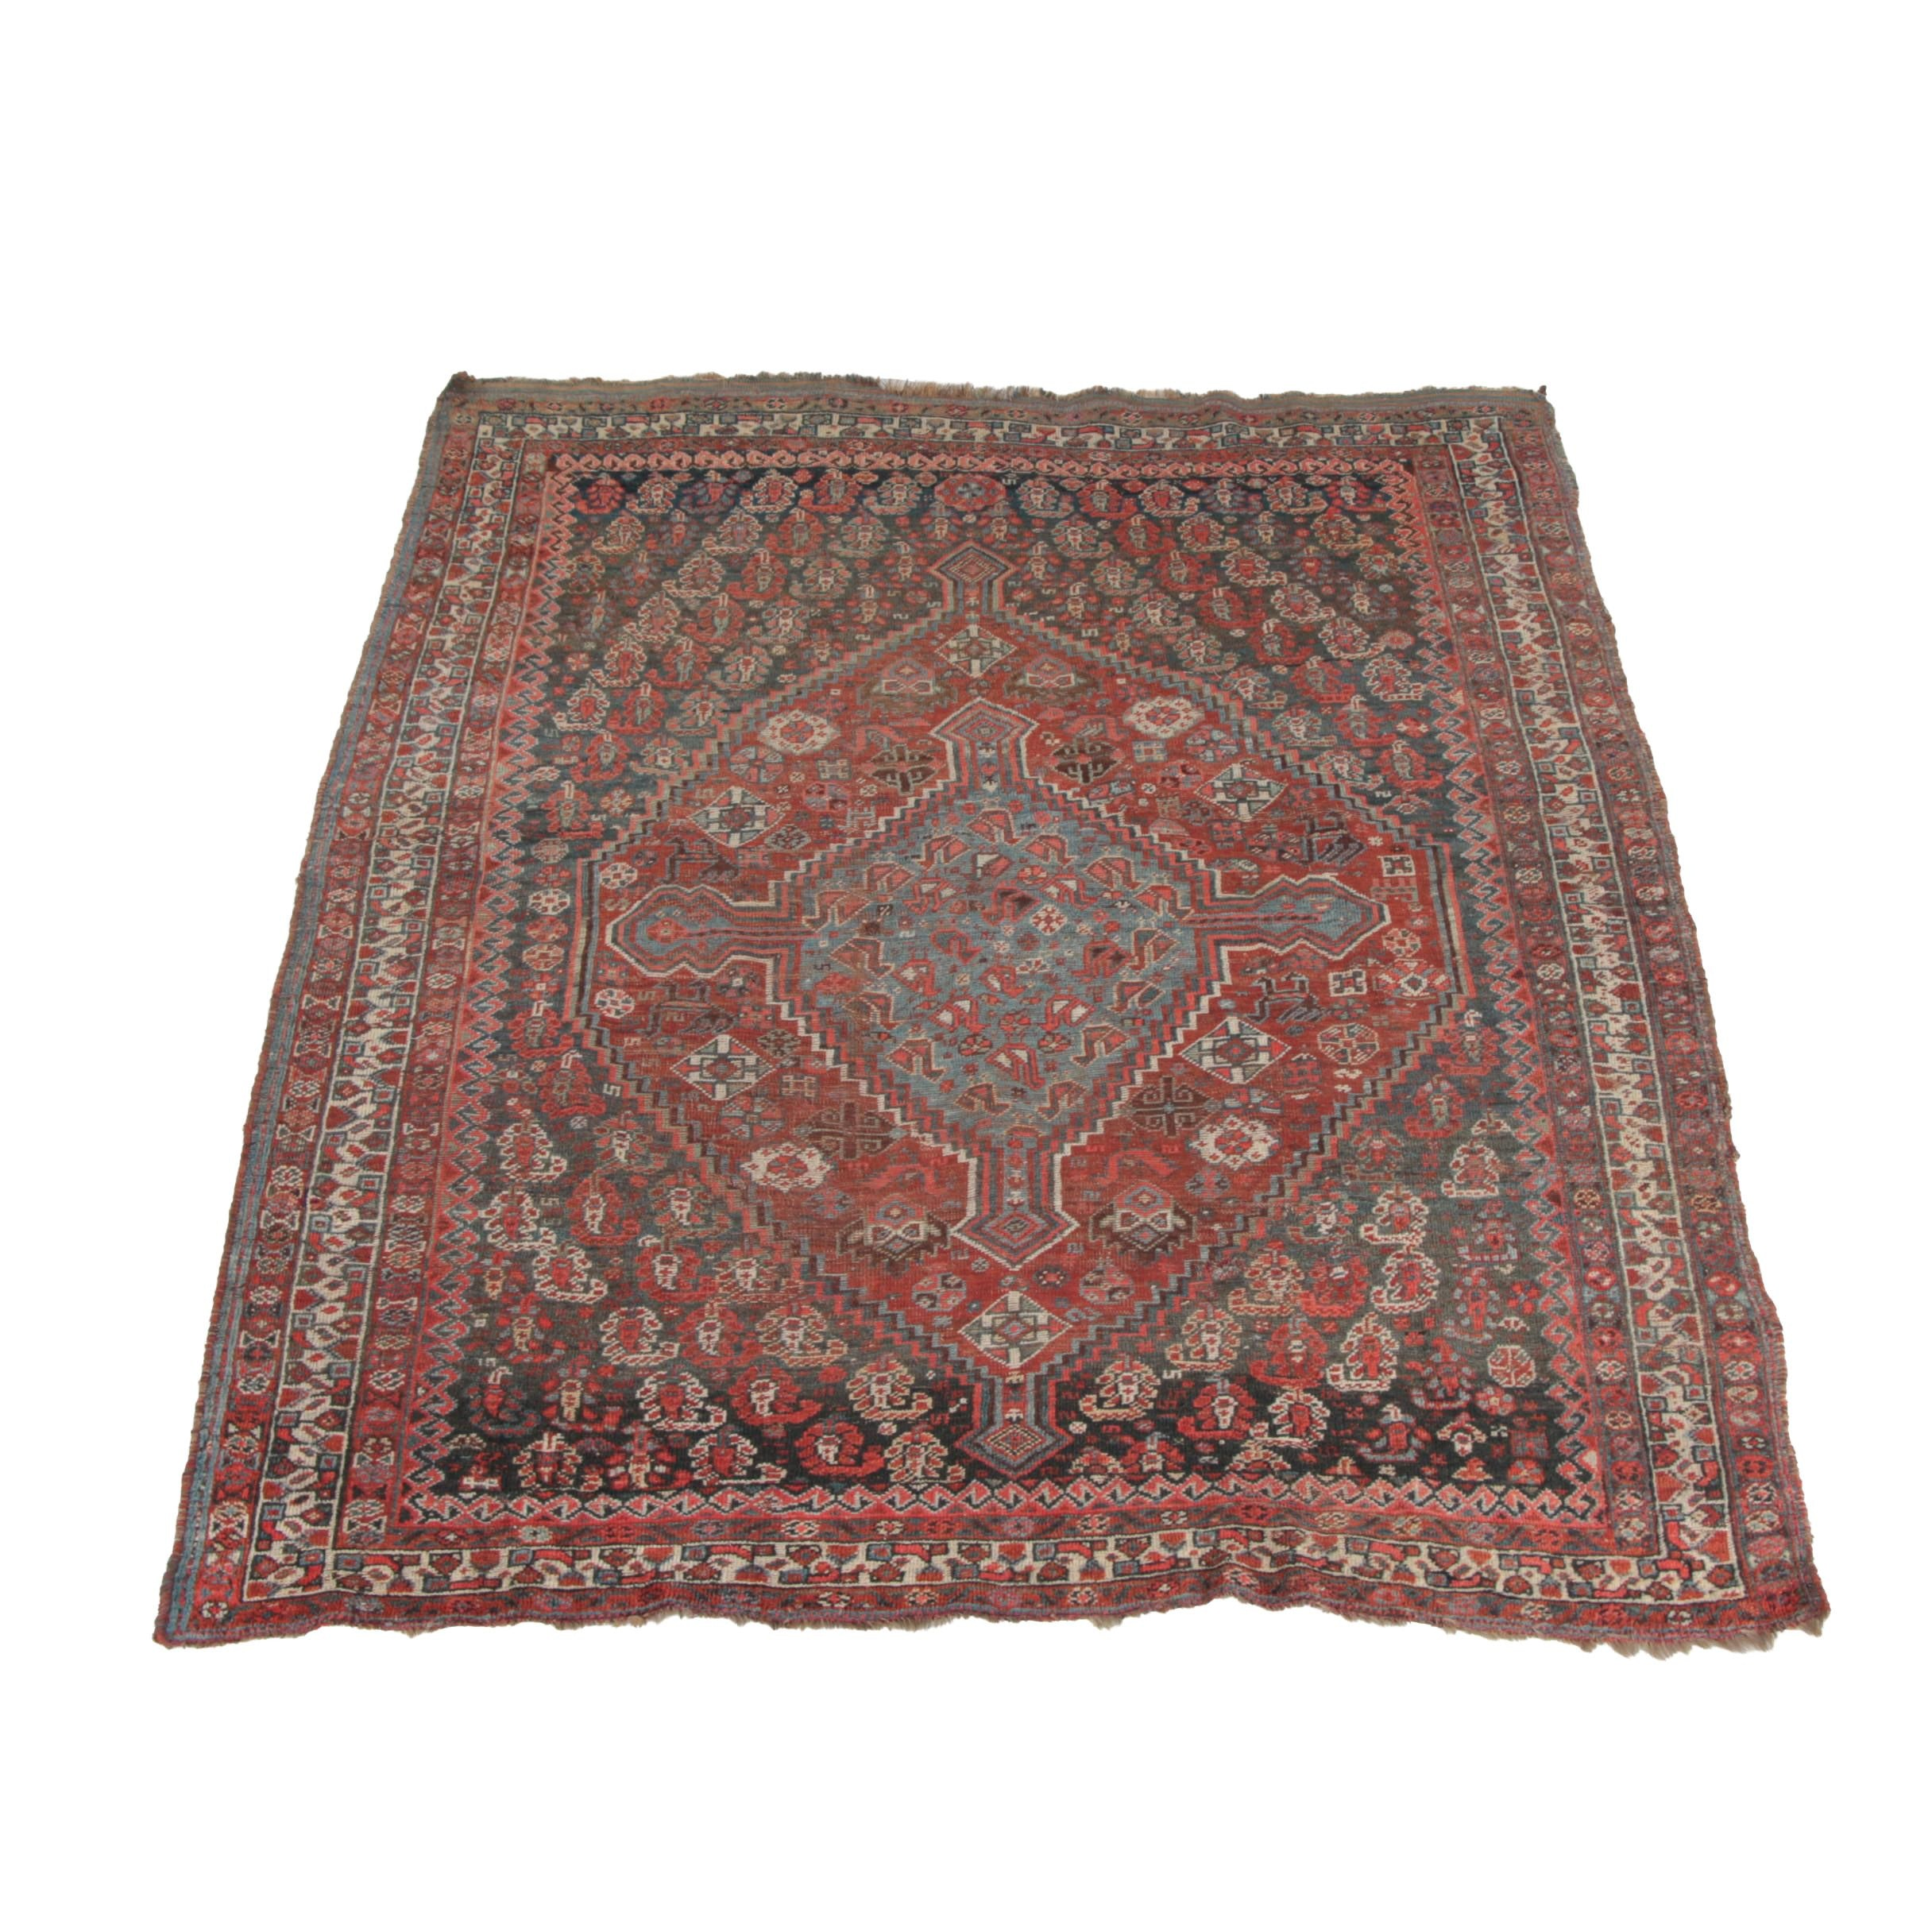 Antique Hand-Knotted Persian Khamseh Area Rug